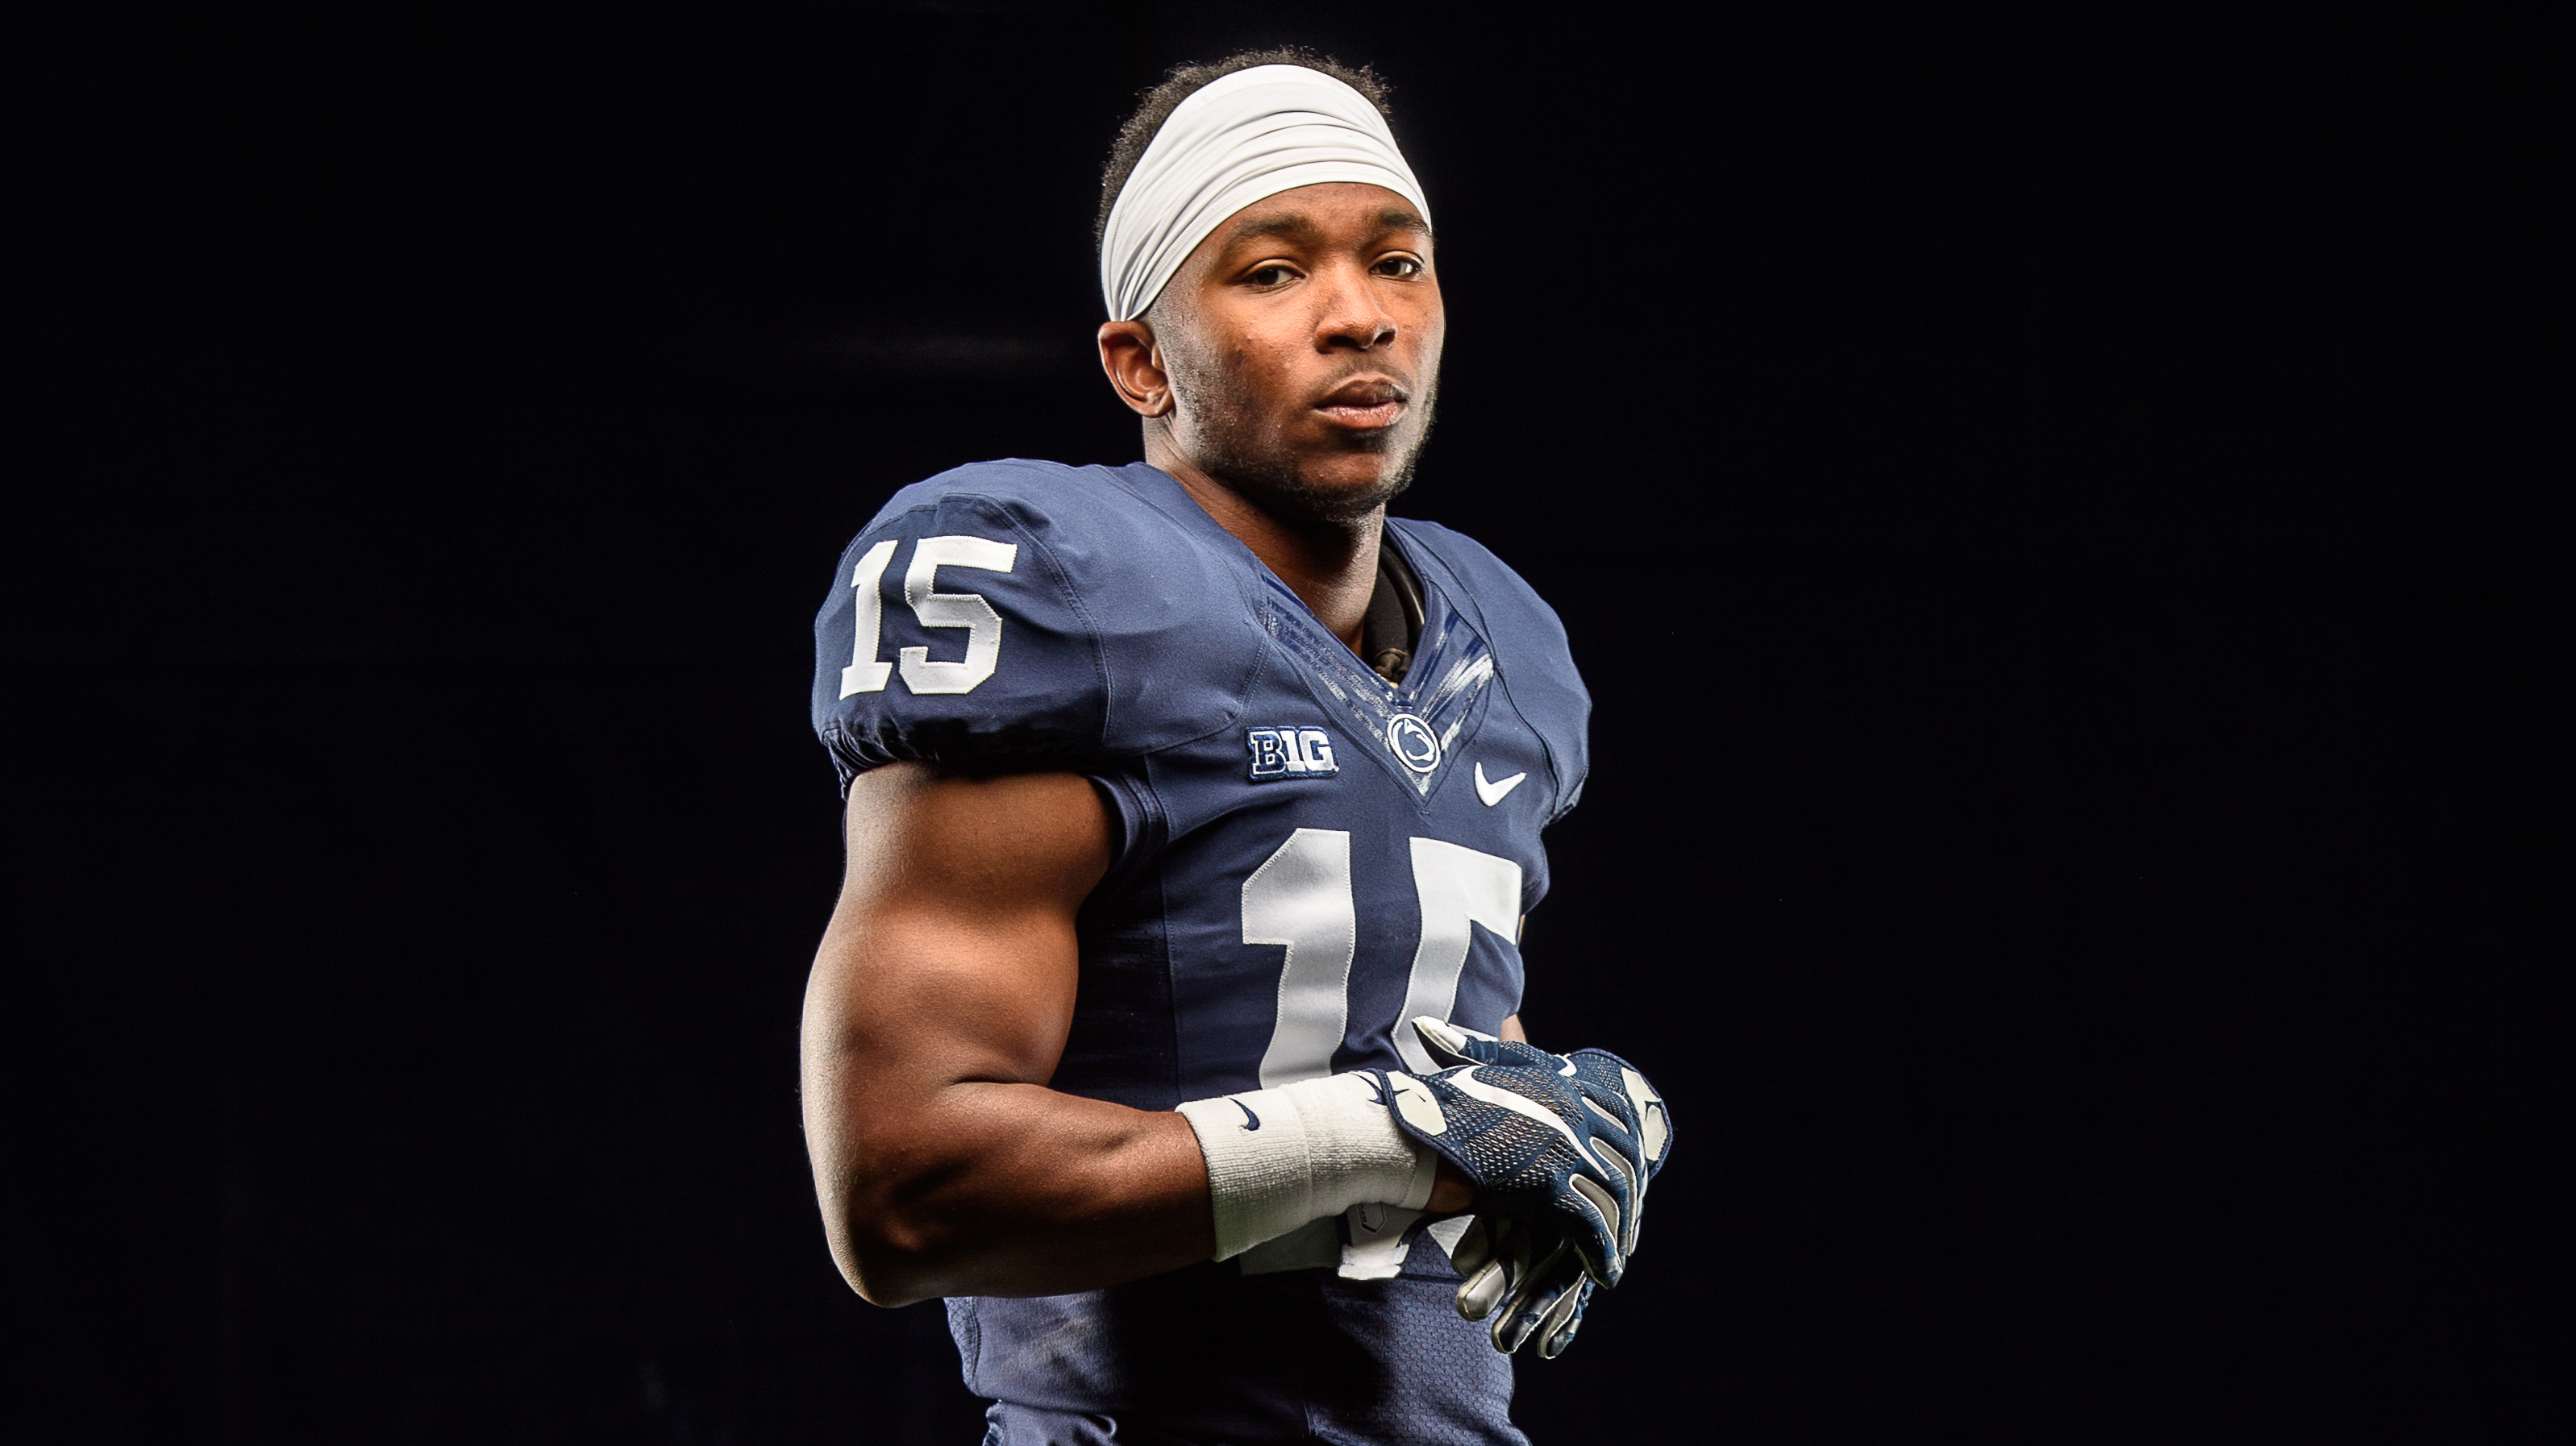 outlet store ba381 62cdf Program Spotlight: From the Peach State to Penn State - Penn ...